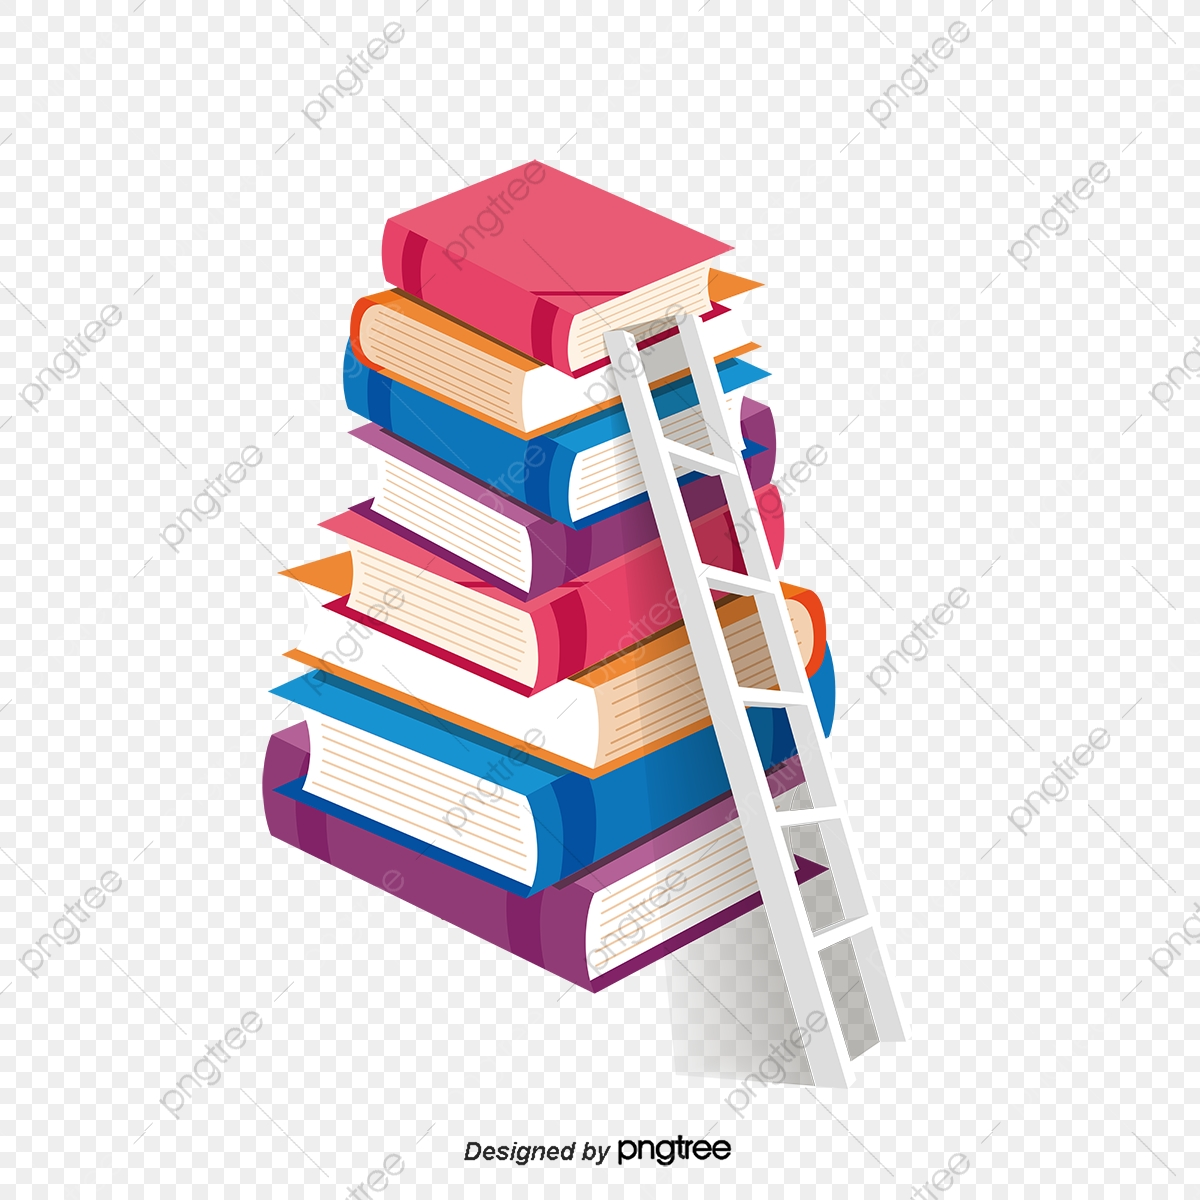 Continental Creative Educational Learning Books Ladder Continental Education Learn Png And Vector With Transparent Background For Free Download